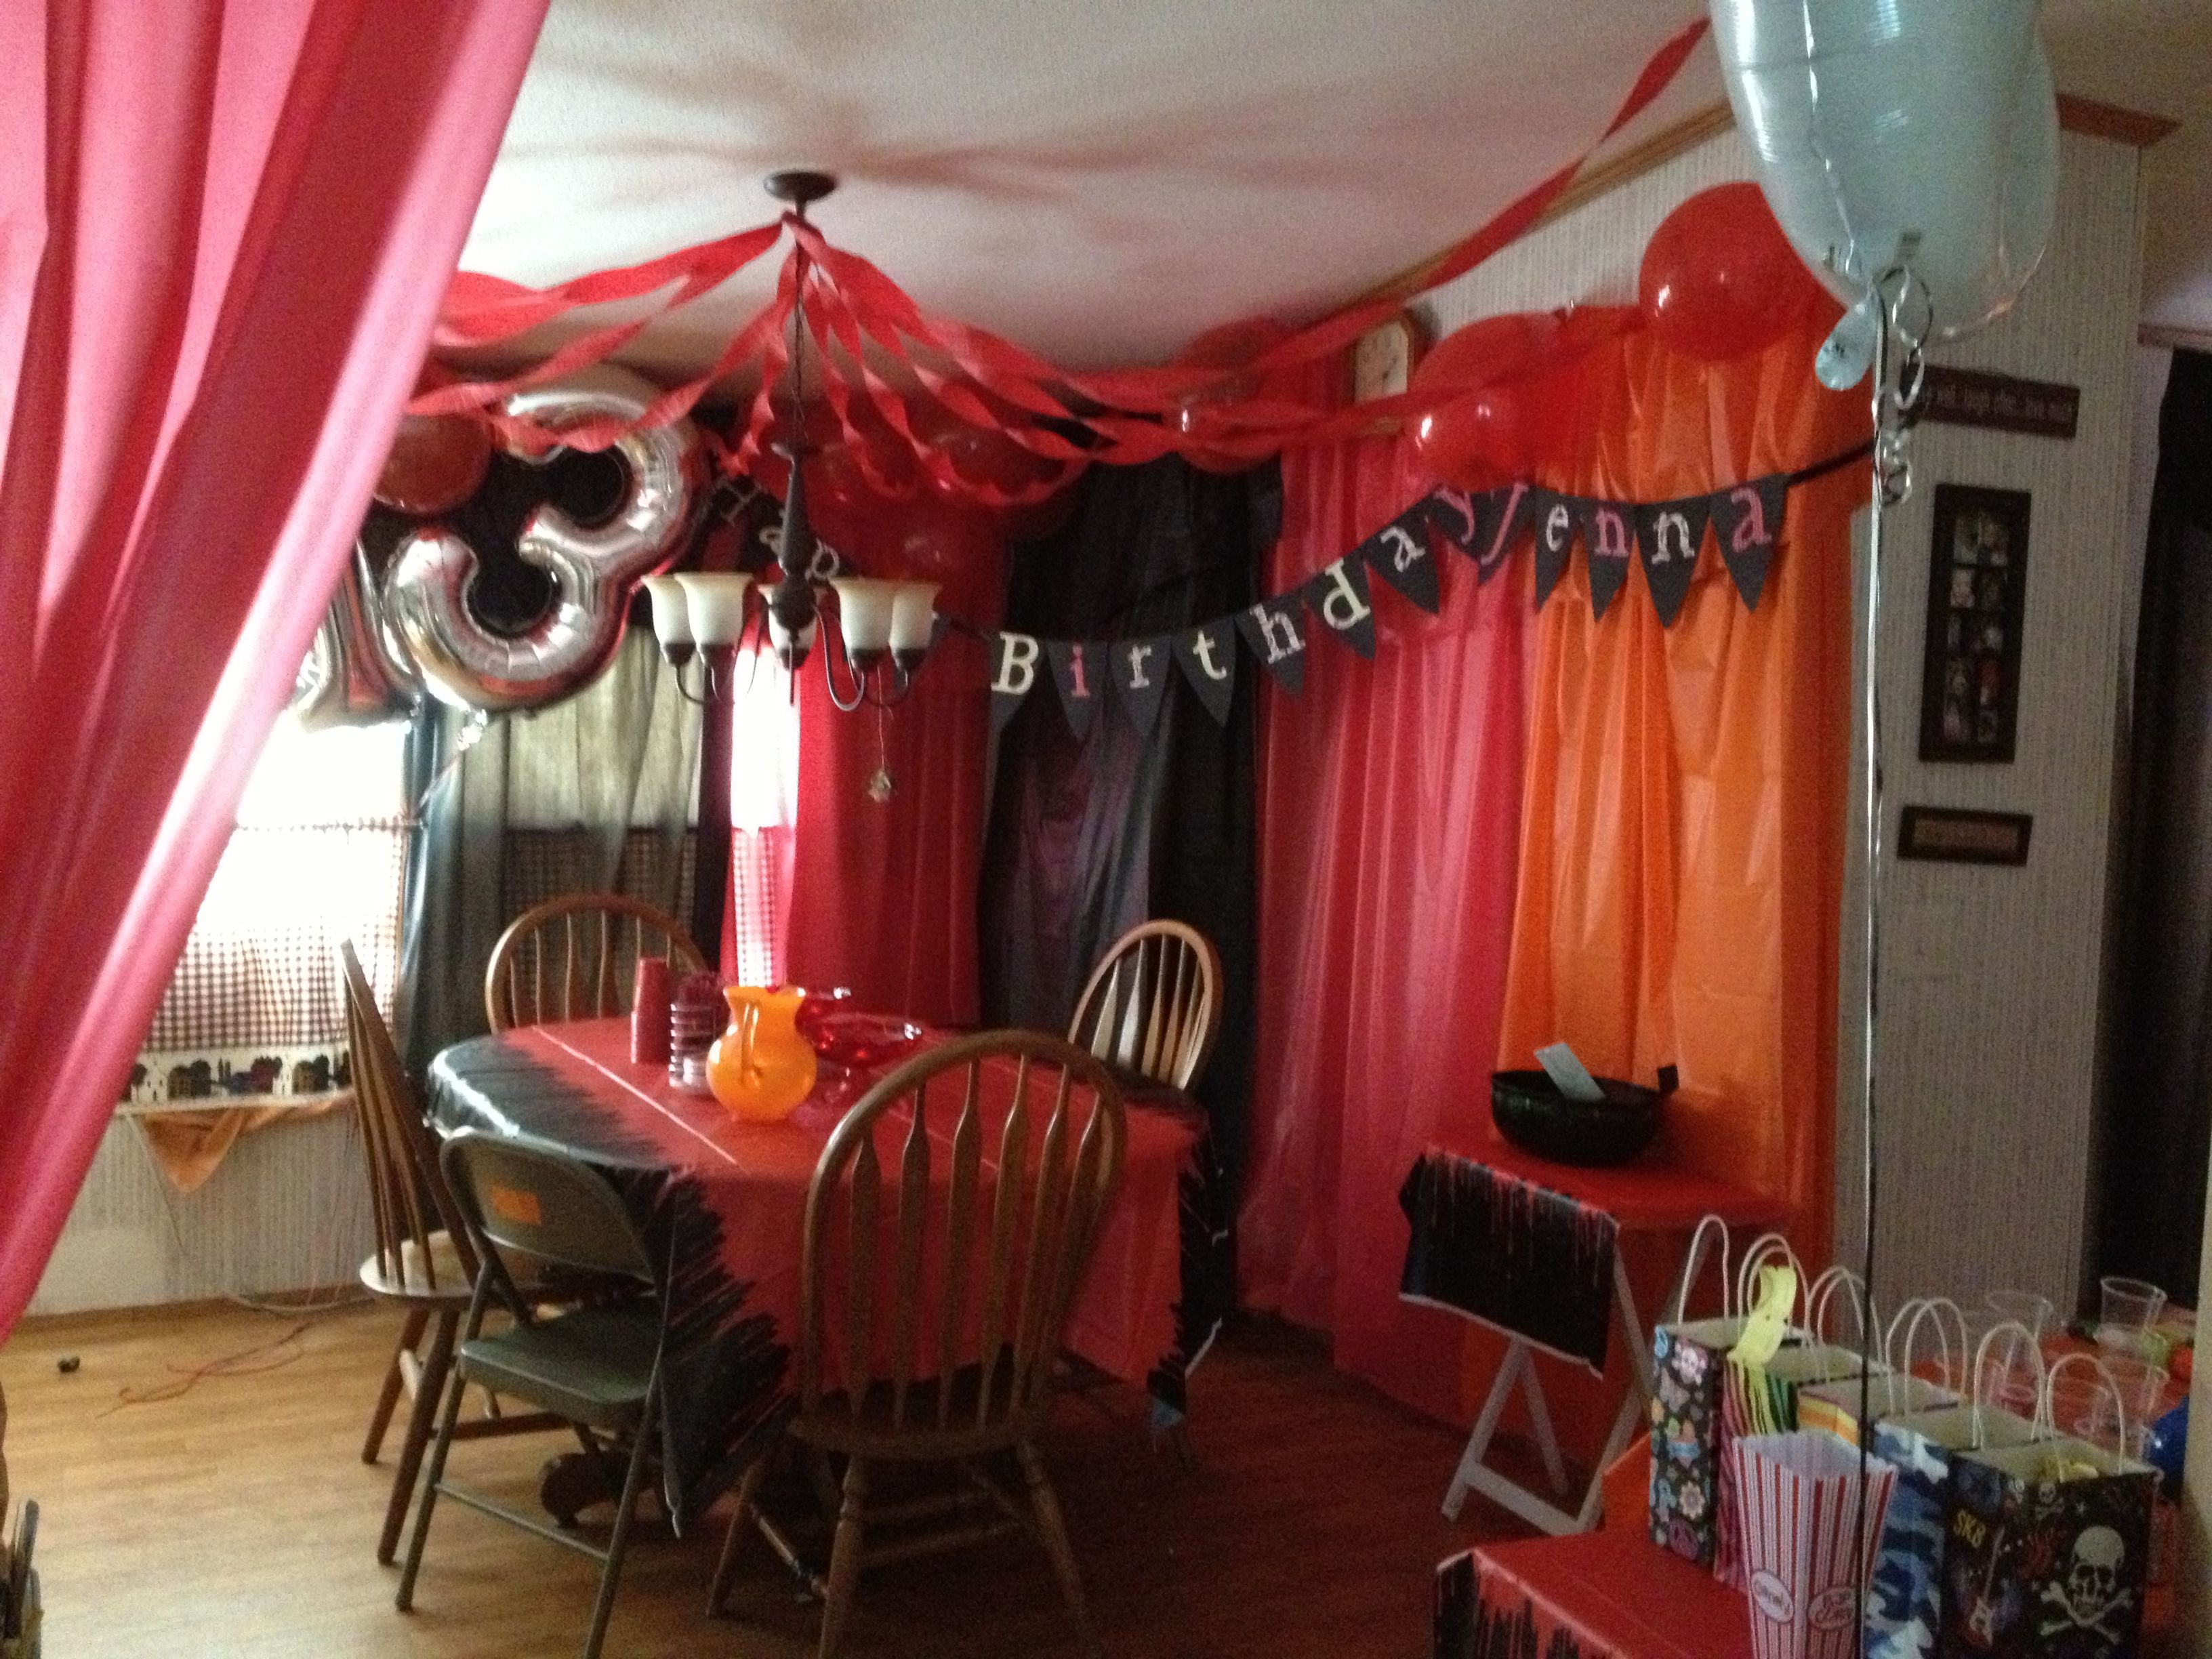 Do it yourself party decorations used fishing wire to for Do it yourself centerpieces for birthday